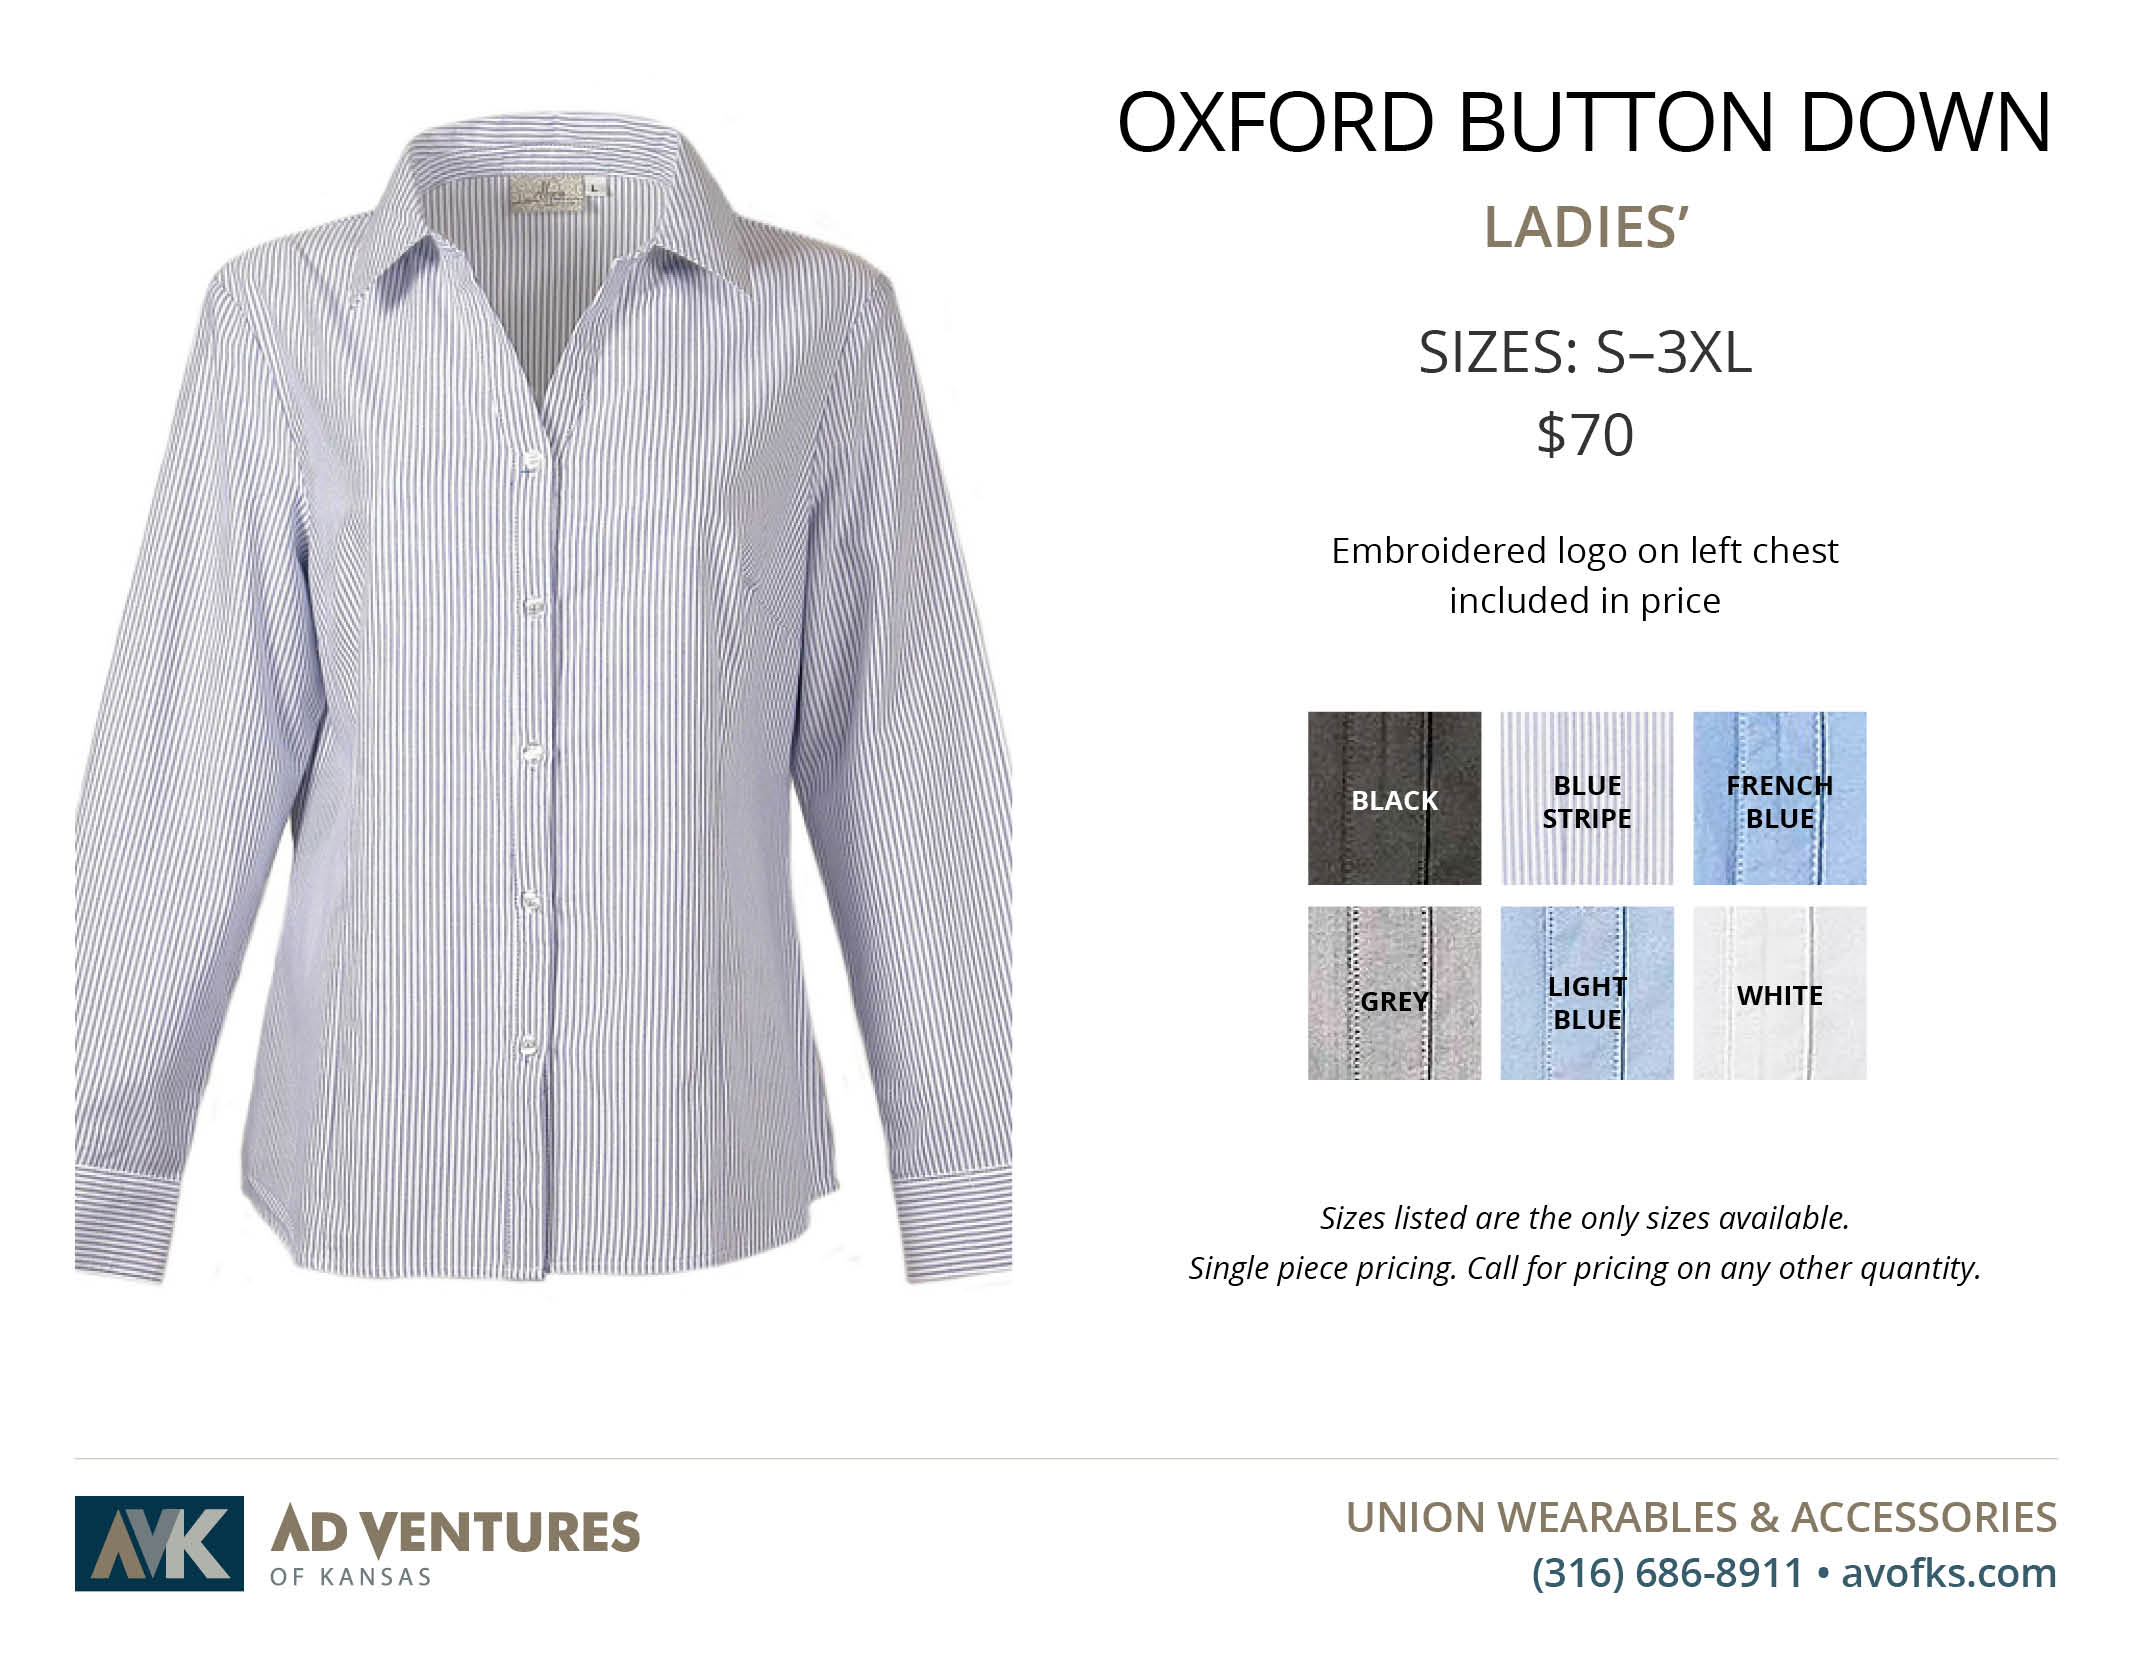 ladies oxford button down